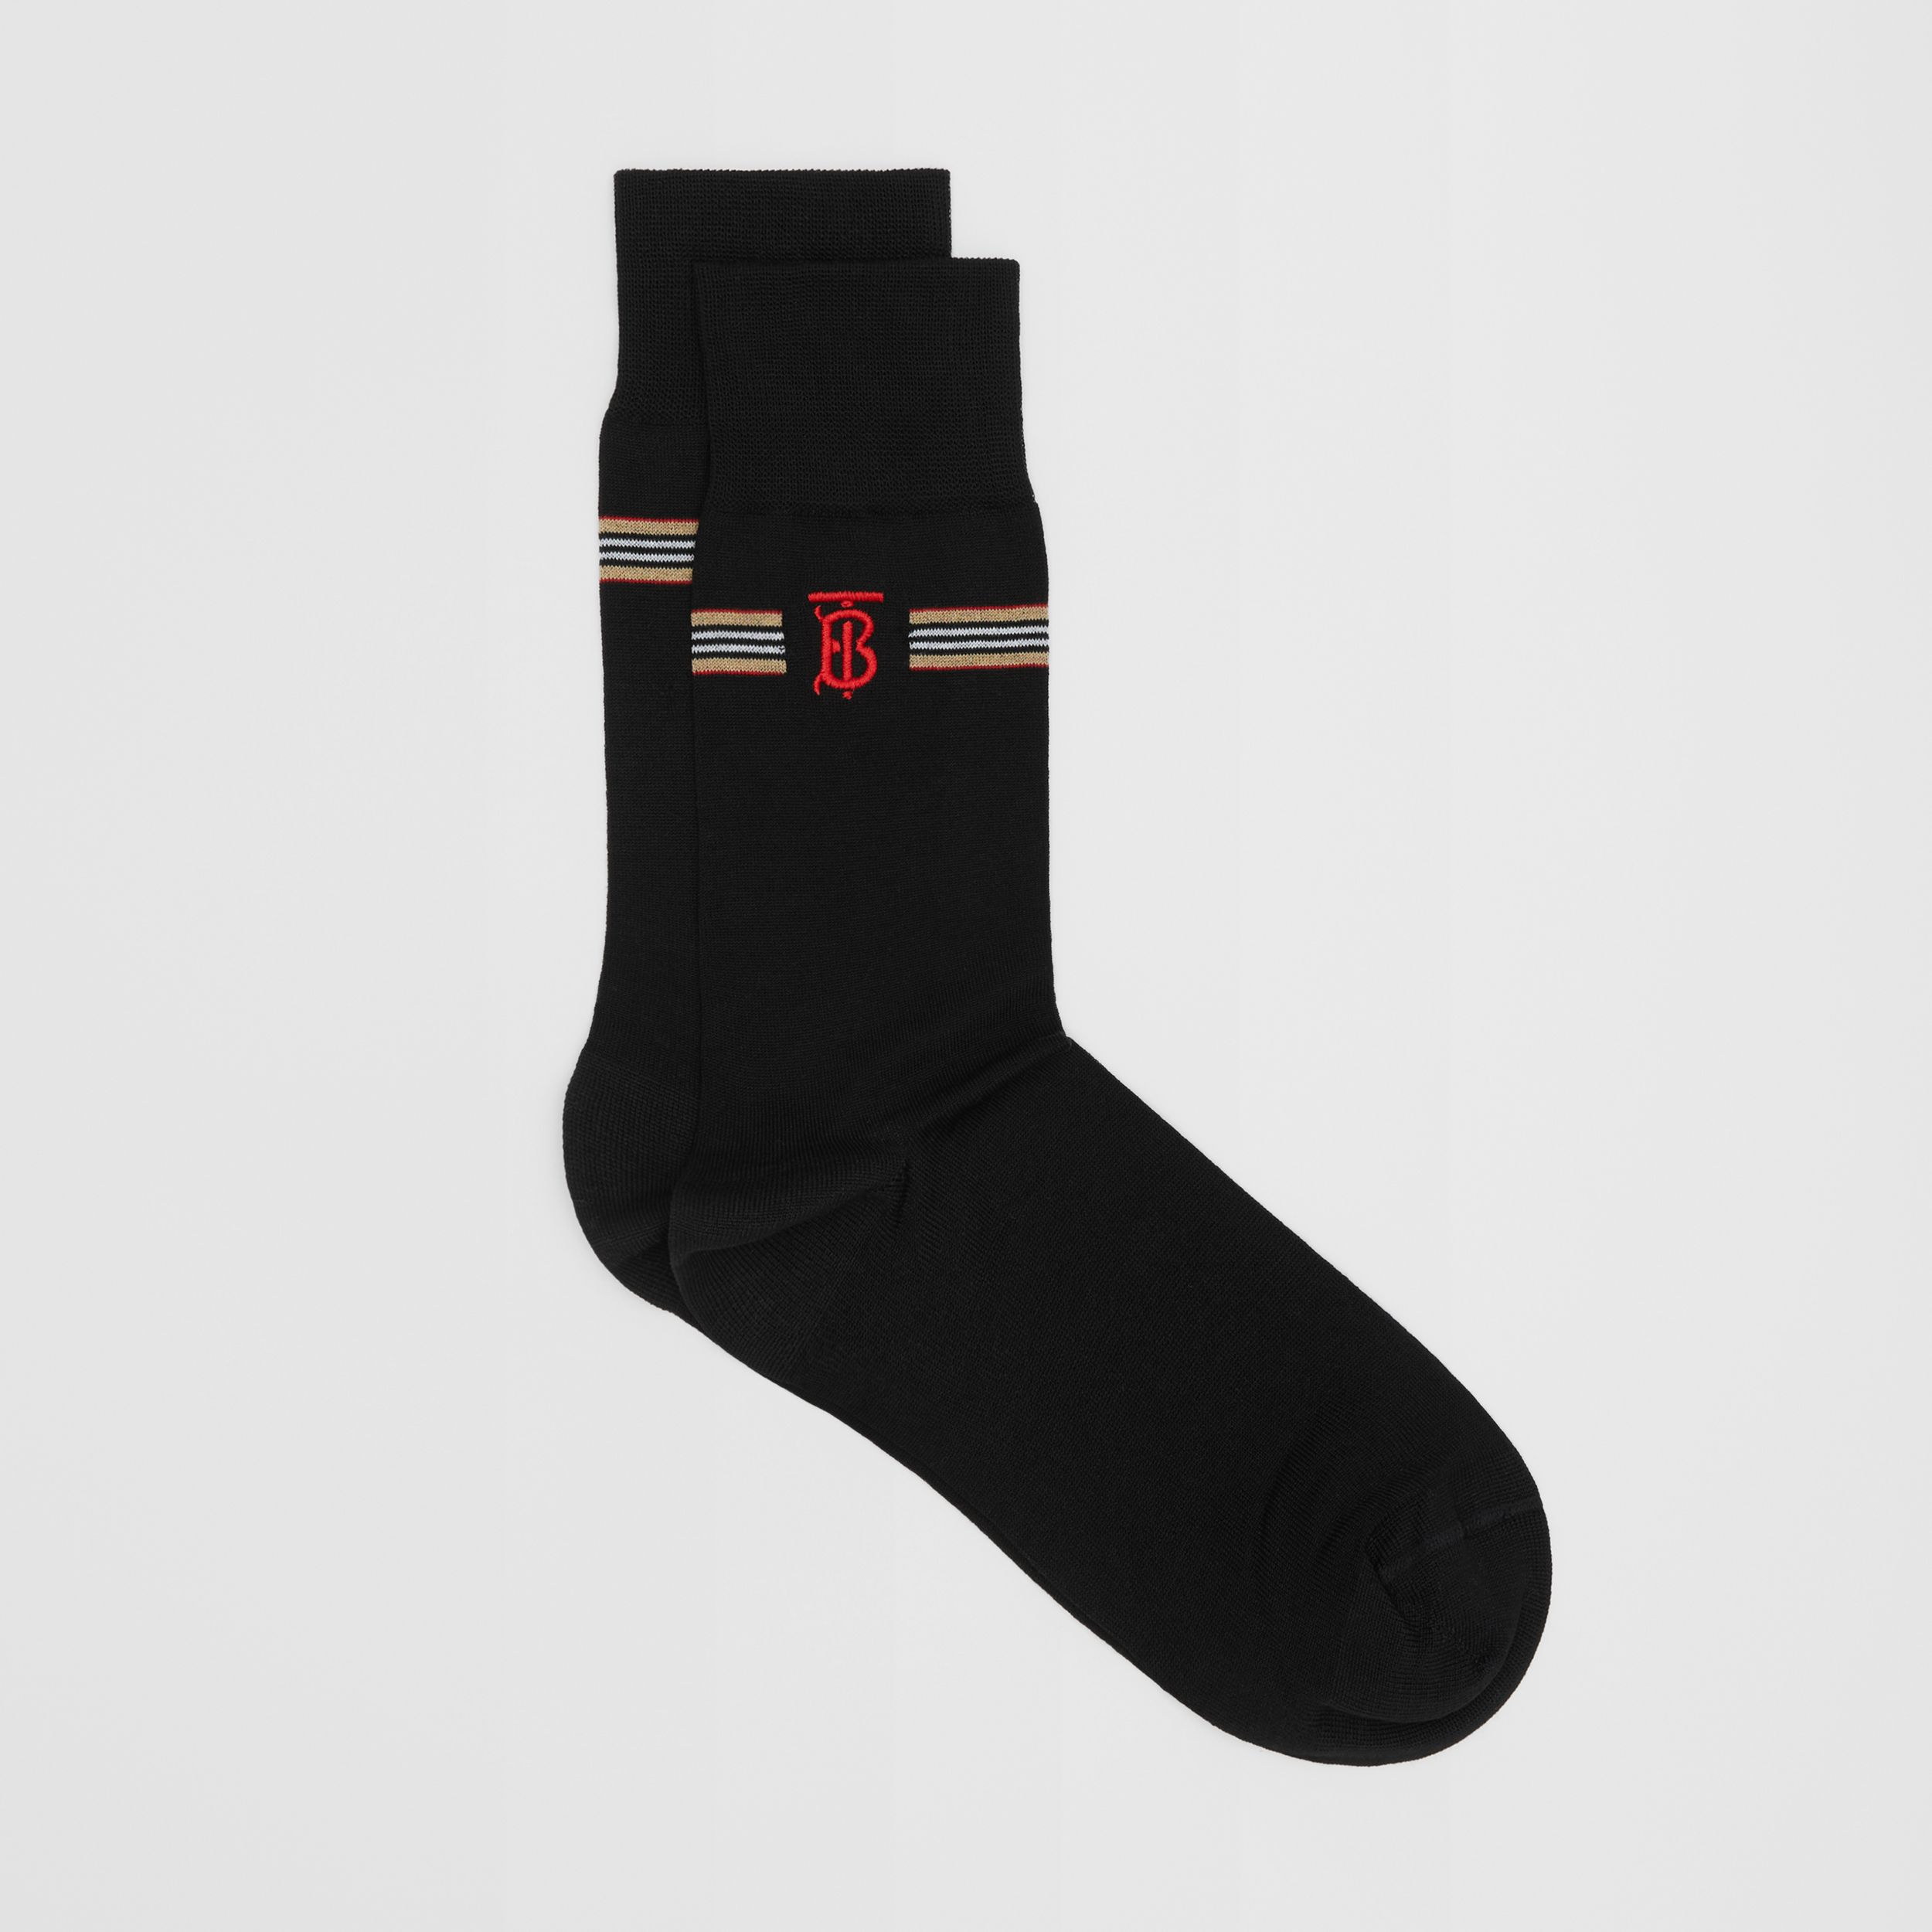 Icon Stripe and Monogram Motif Cotton Blend Socks in Black | Burberry Australia - 3